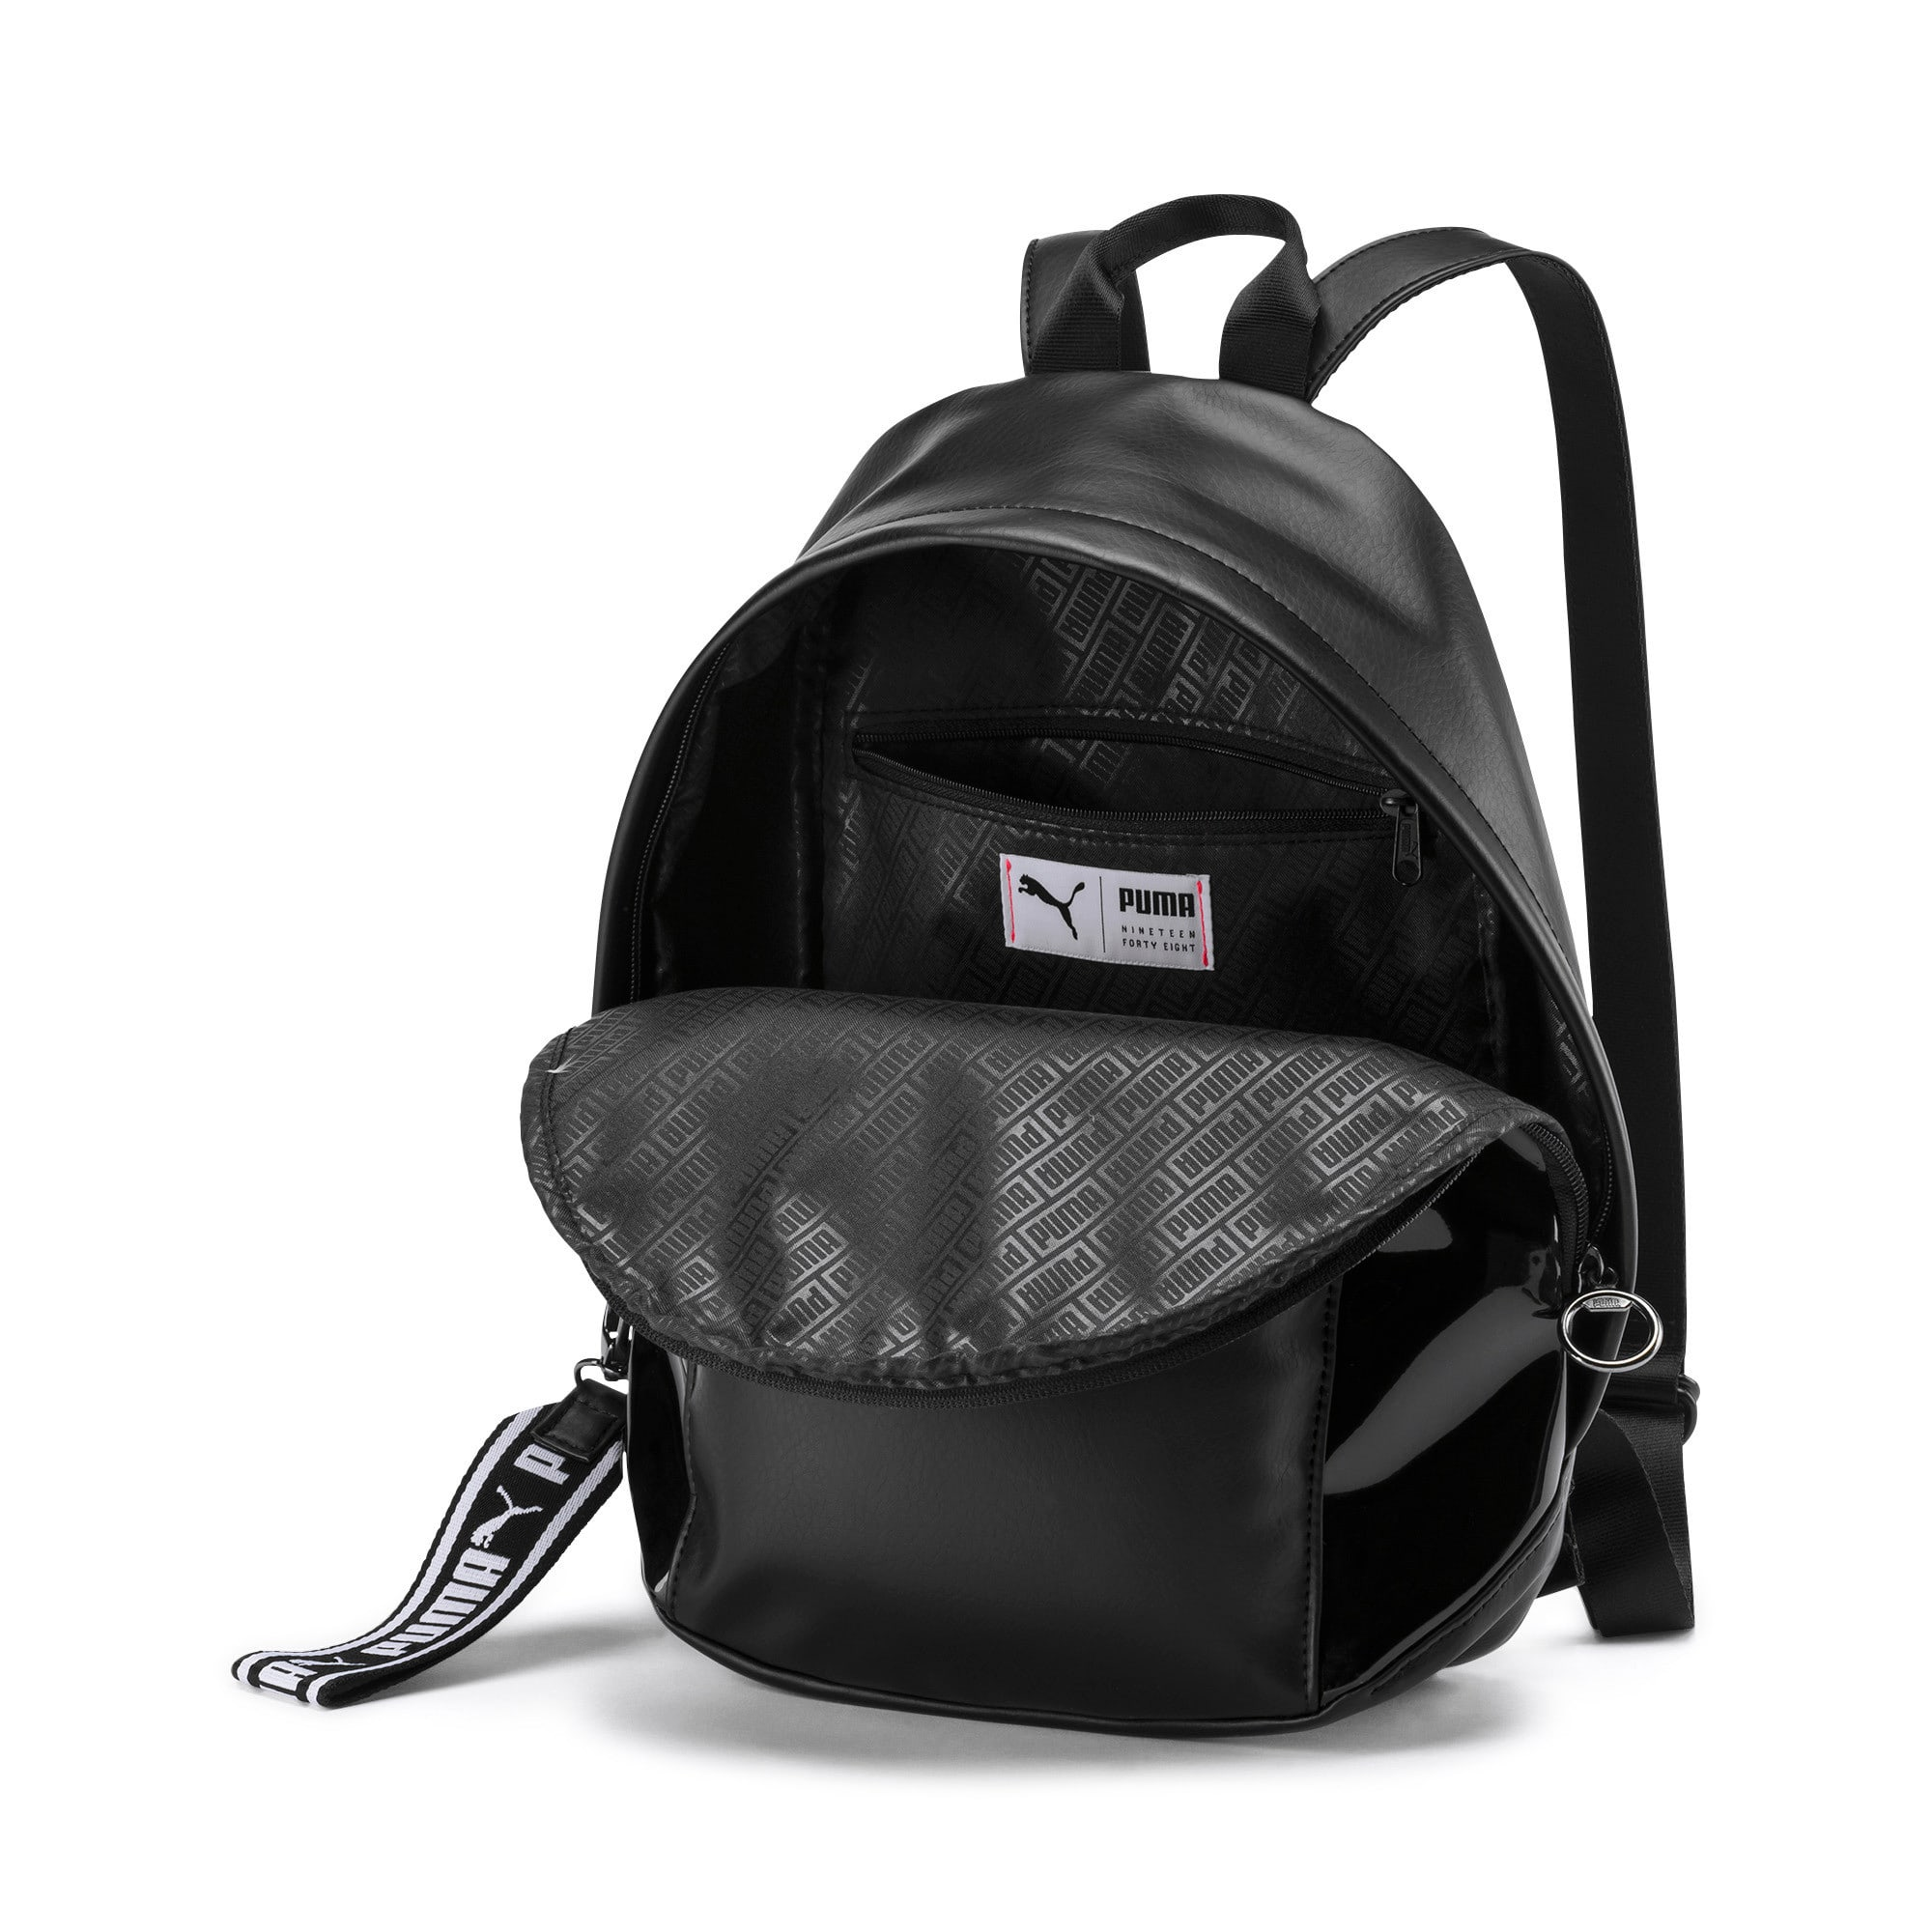 Thumbnail 4 of Premium Women's Backpack, Puma Black, medium